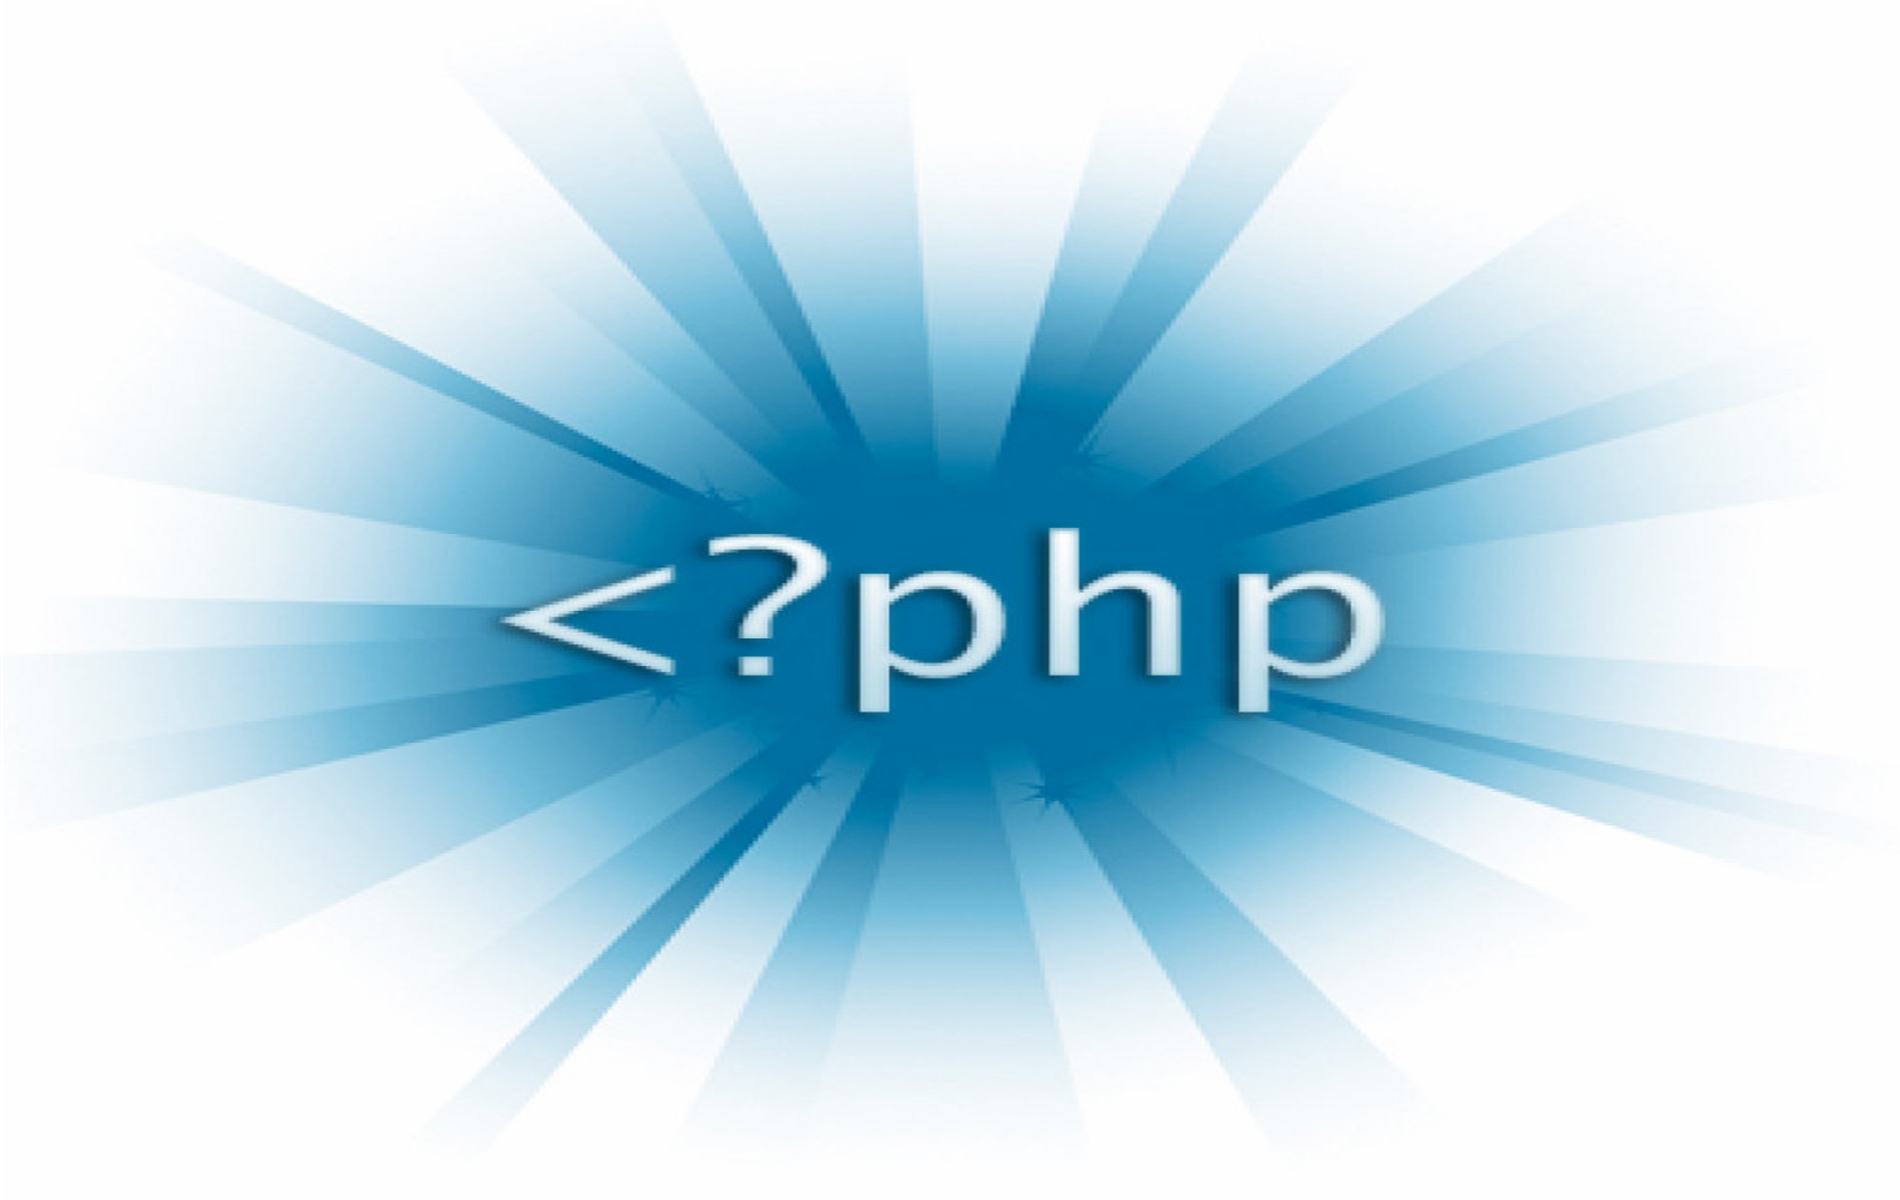 PHP - A Powerful Programming Language for Web Development